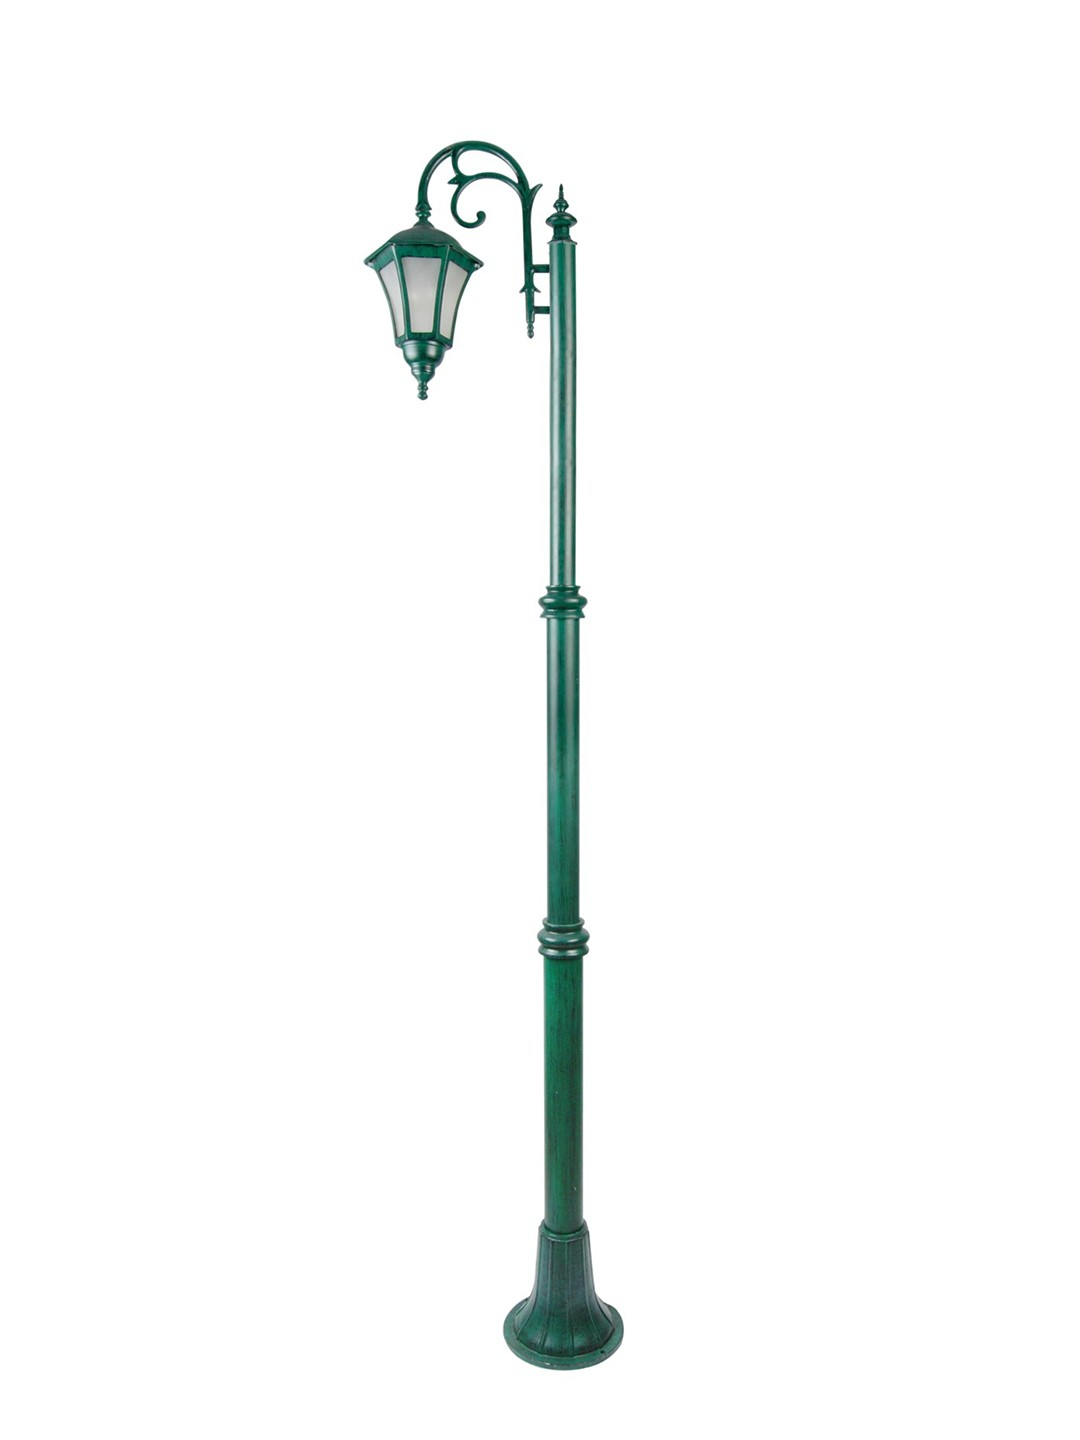 Classic Antique Green Single Downward Lamp Pole Light